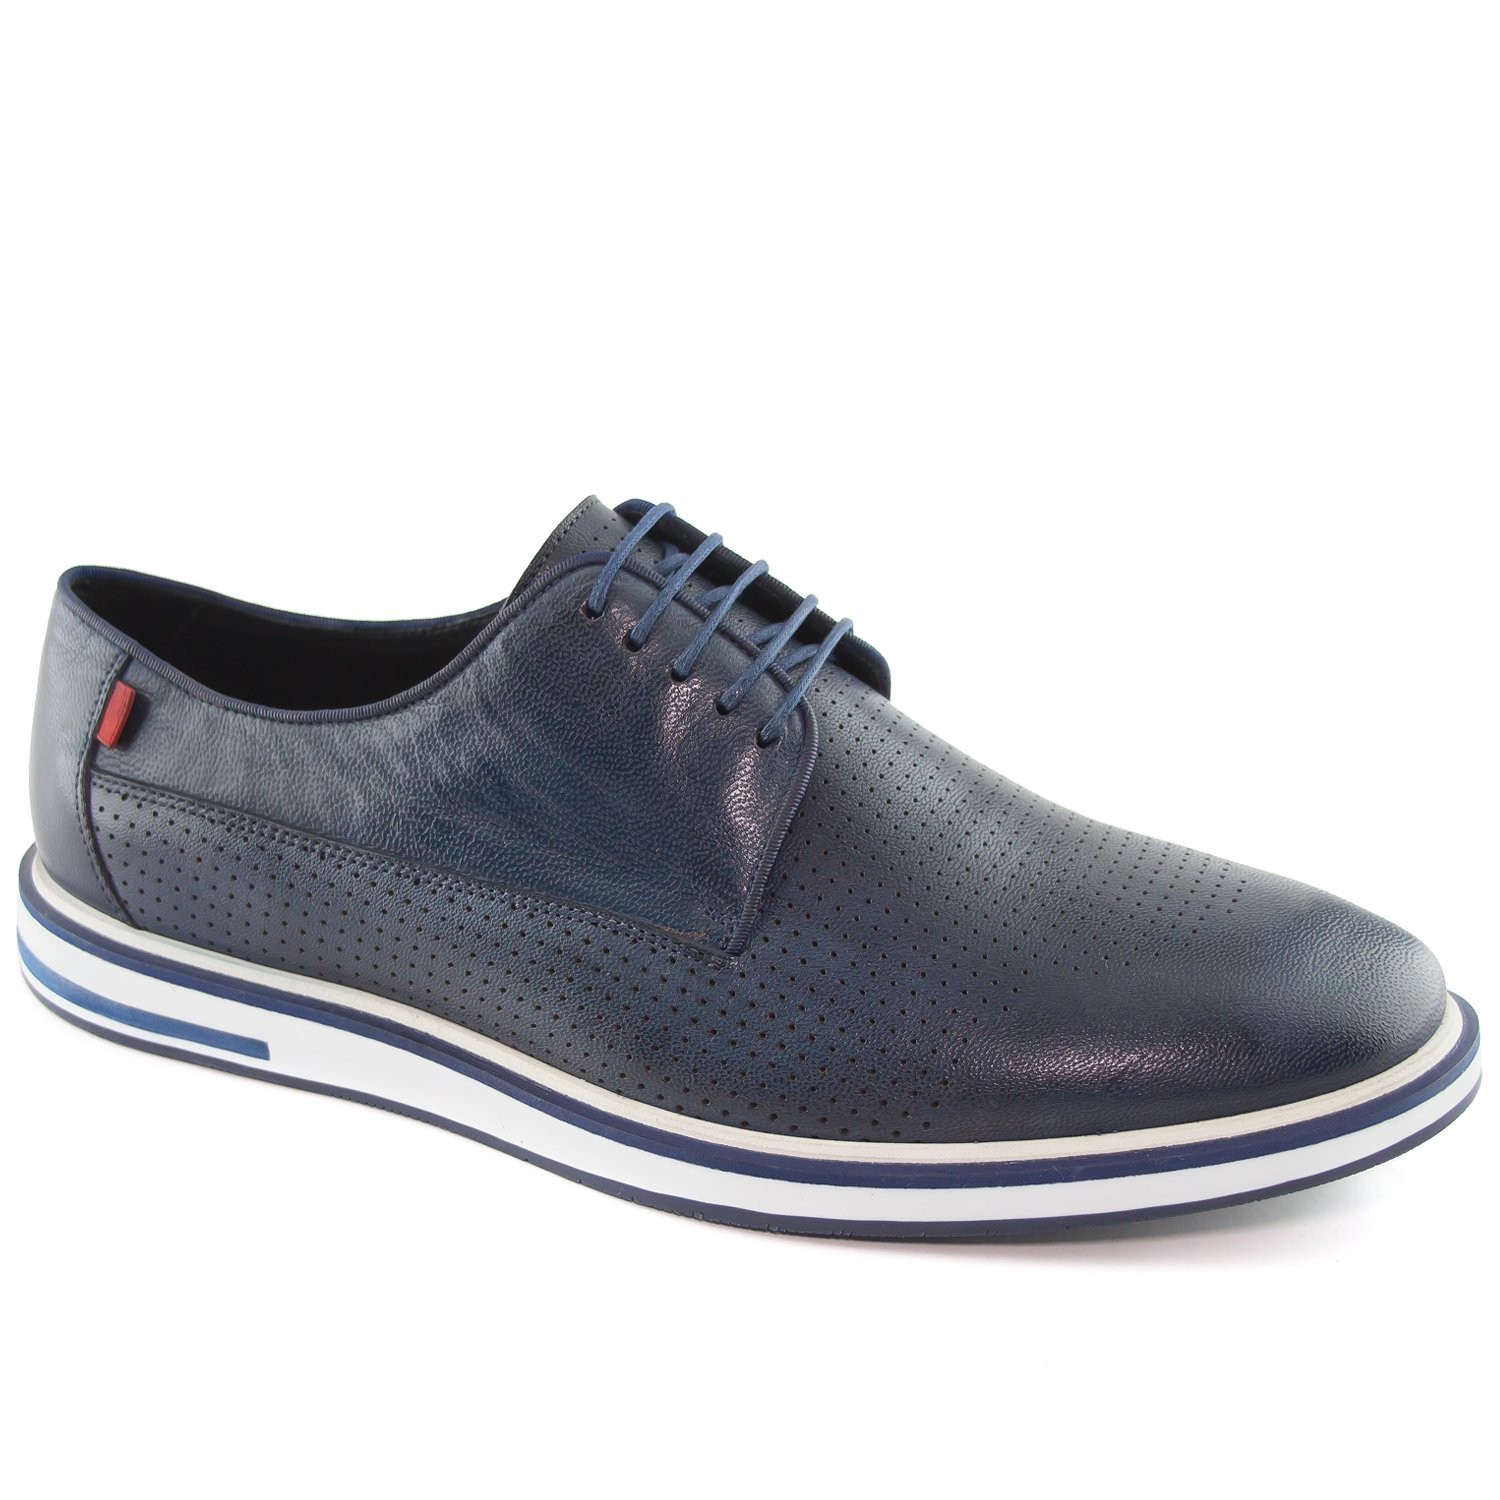 Marc Joseph New York Men's Manhattan Navy Perforrated Leather Oxford Laceup 8.5